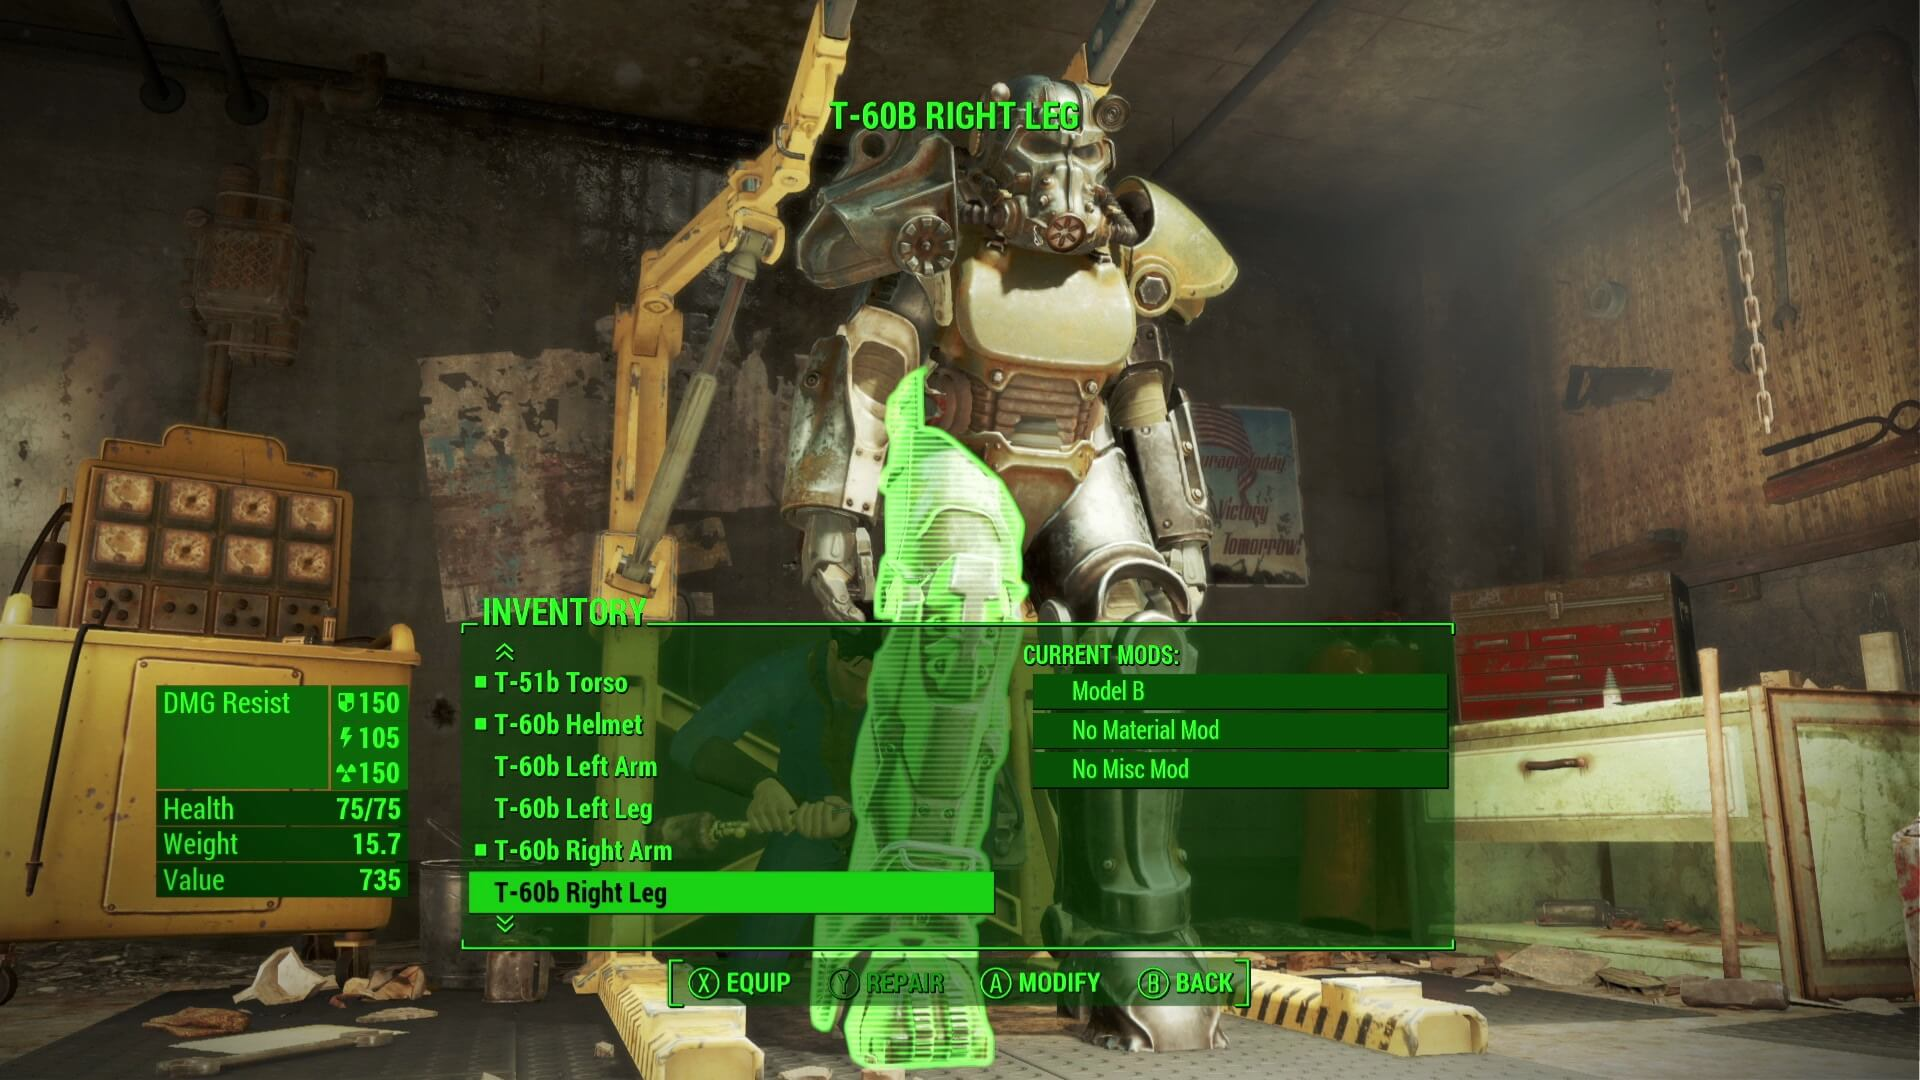 Free download Fallout 4 Power Armor Mod [1920x1080] for your